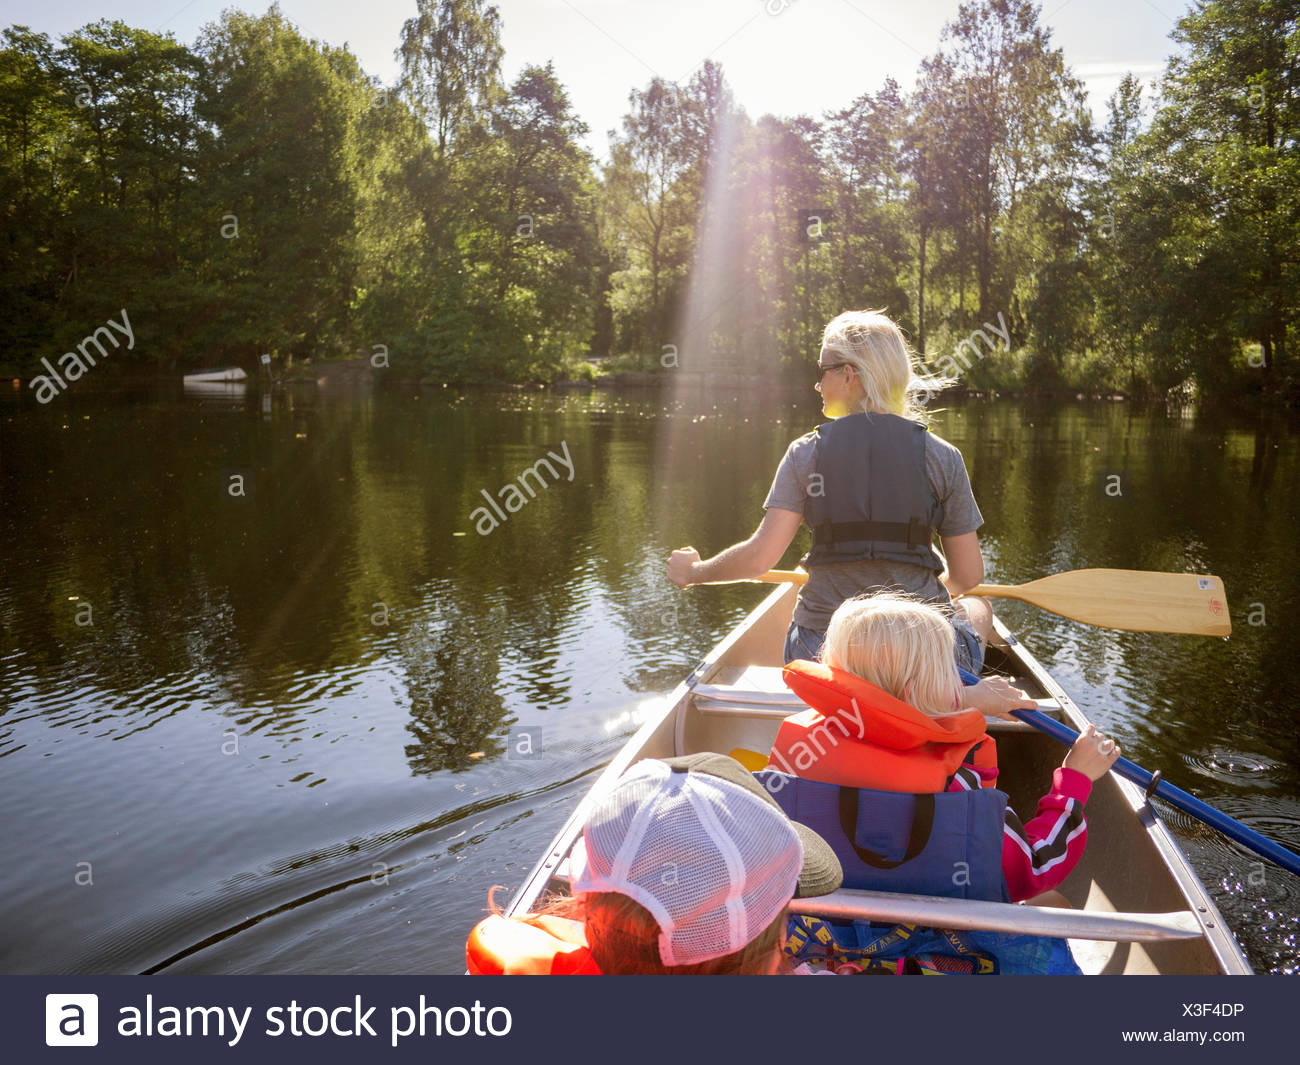 Mother, son (8-9) and daughter (6-7) navigating across lake in rowboat - Stock Image